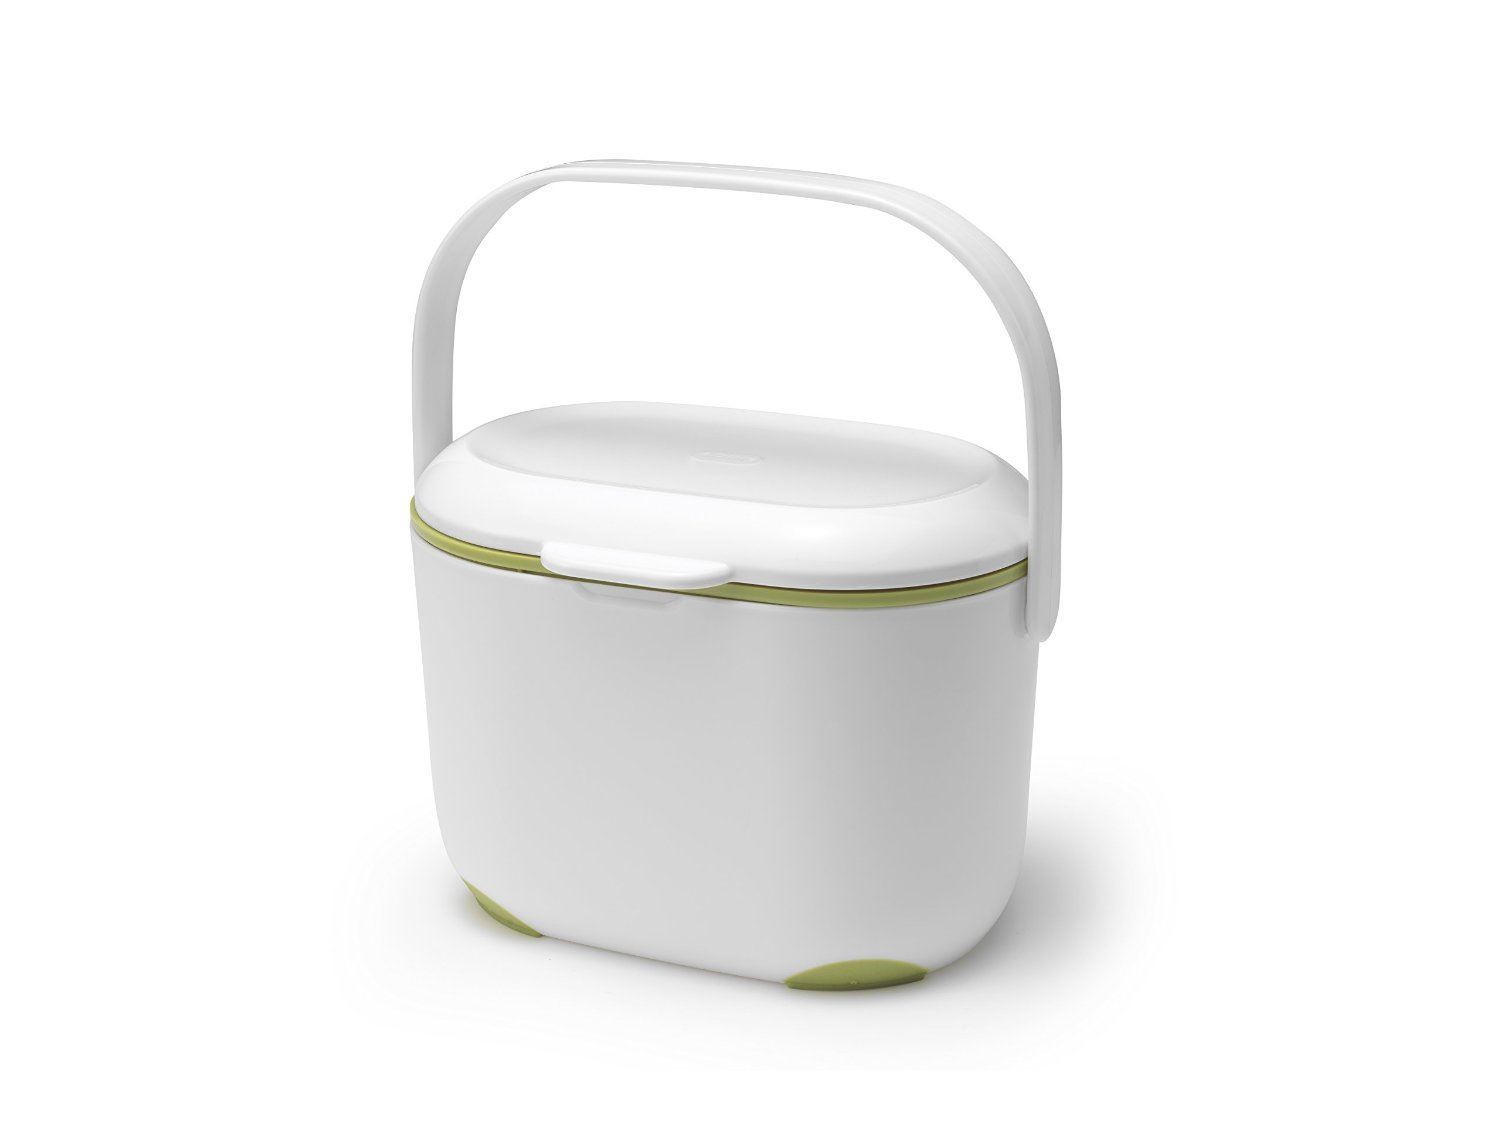 addis white kitchen waste food recycling compost caddy bin. Black Bedroom Furniture Sets. Home Design Ideas